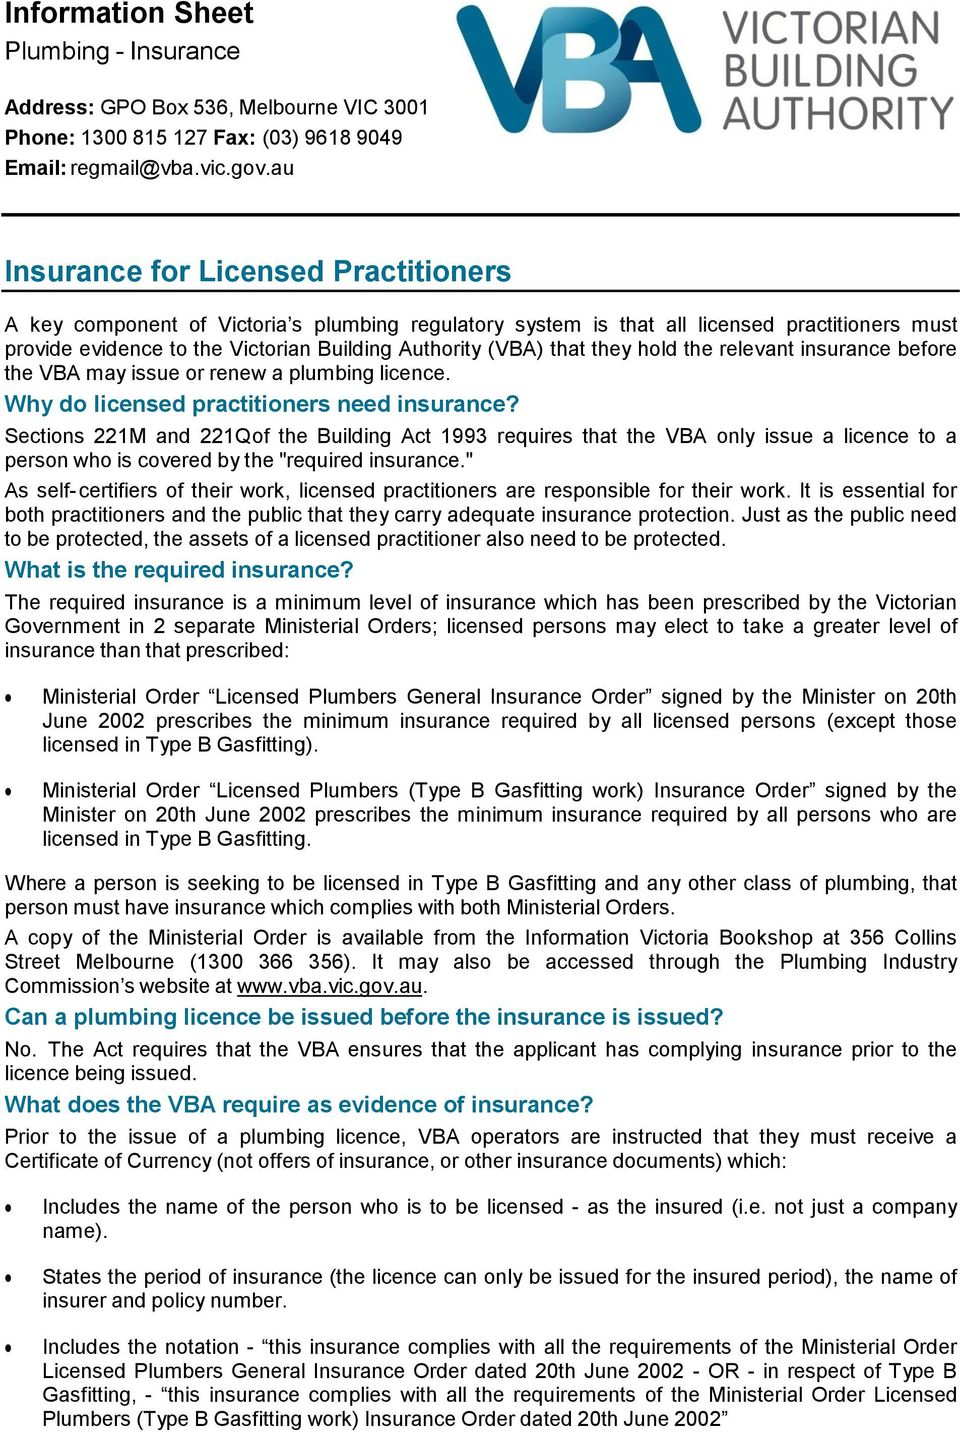 that they hold the relevant insurance before the VBA may issue or renew a plumbing licence. Why do licensed practitioners need insurance?